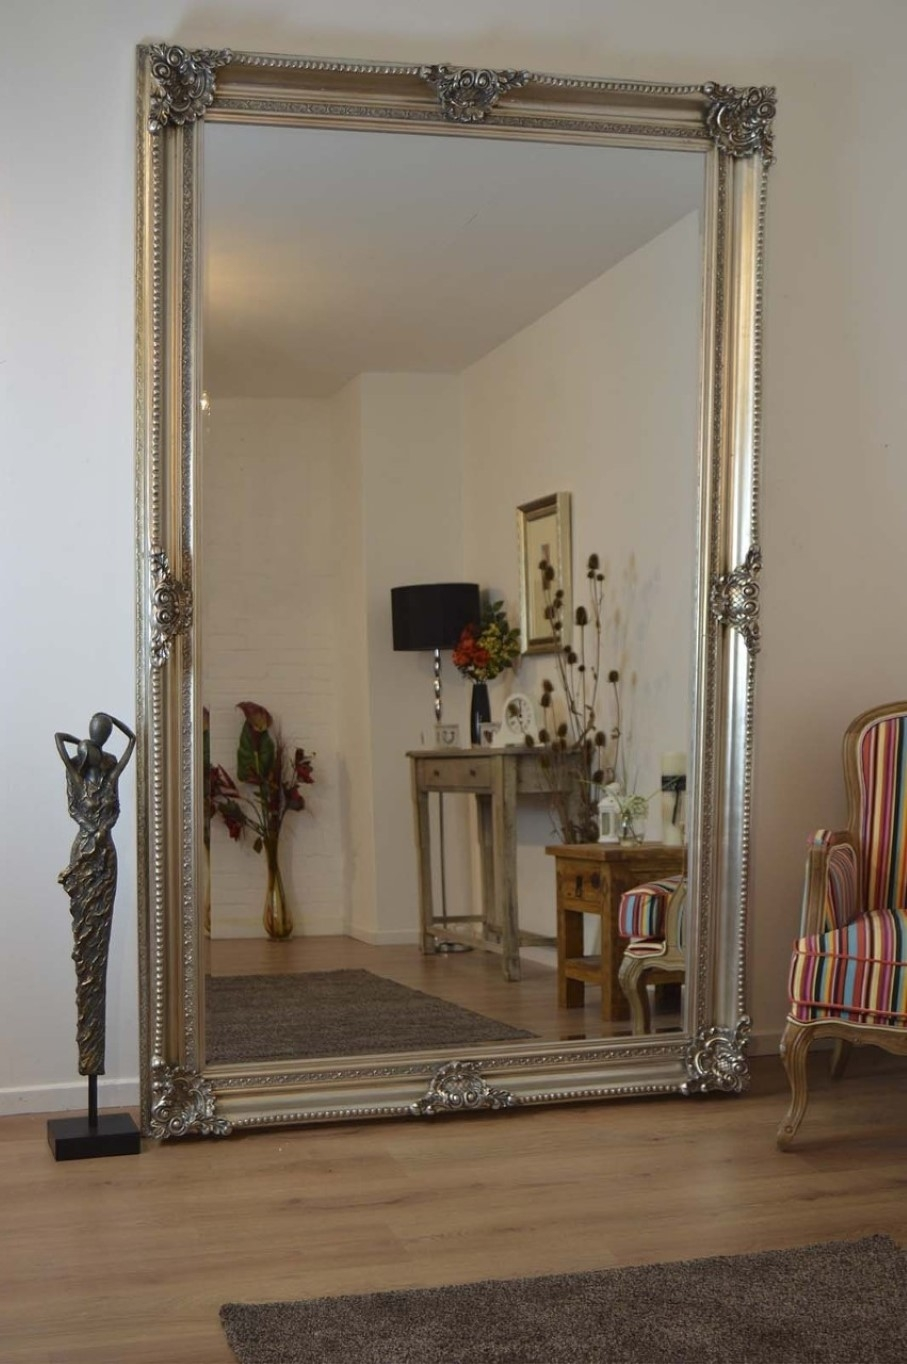 Stunning Decoration Big Wall Mirror Crafty Ideas Inspiration Large With Large Wall Mirrors (Image 13 of 15)